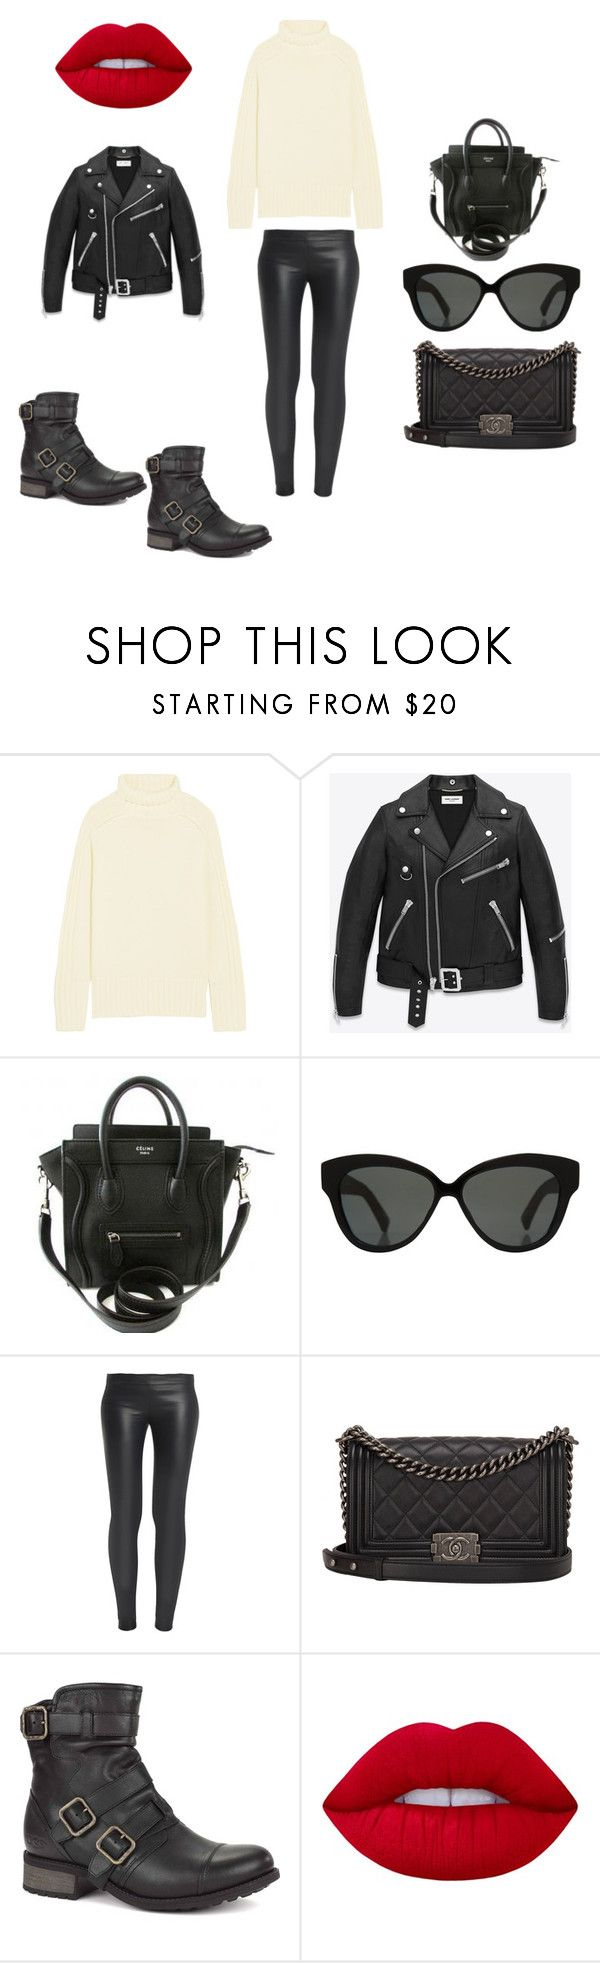 """""""Untitled #1591"""" by kaittd on Polyvore featuring Joseph, Yves Saint Laurent, Linda Farrow, The Row, Chanel, UGG Australia and Lime Crime"""